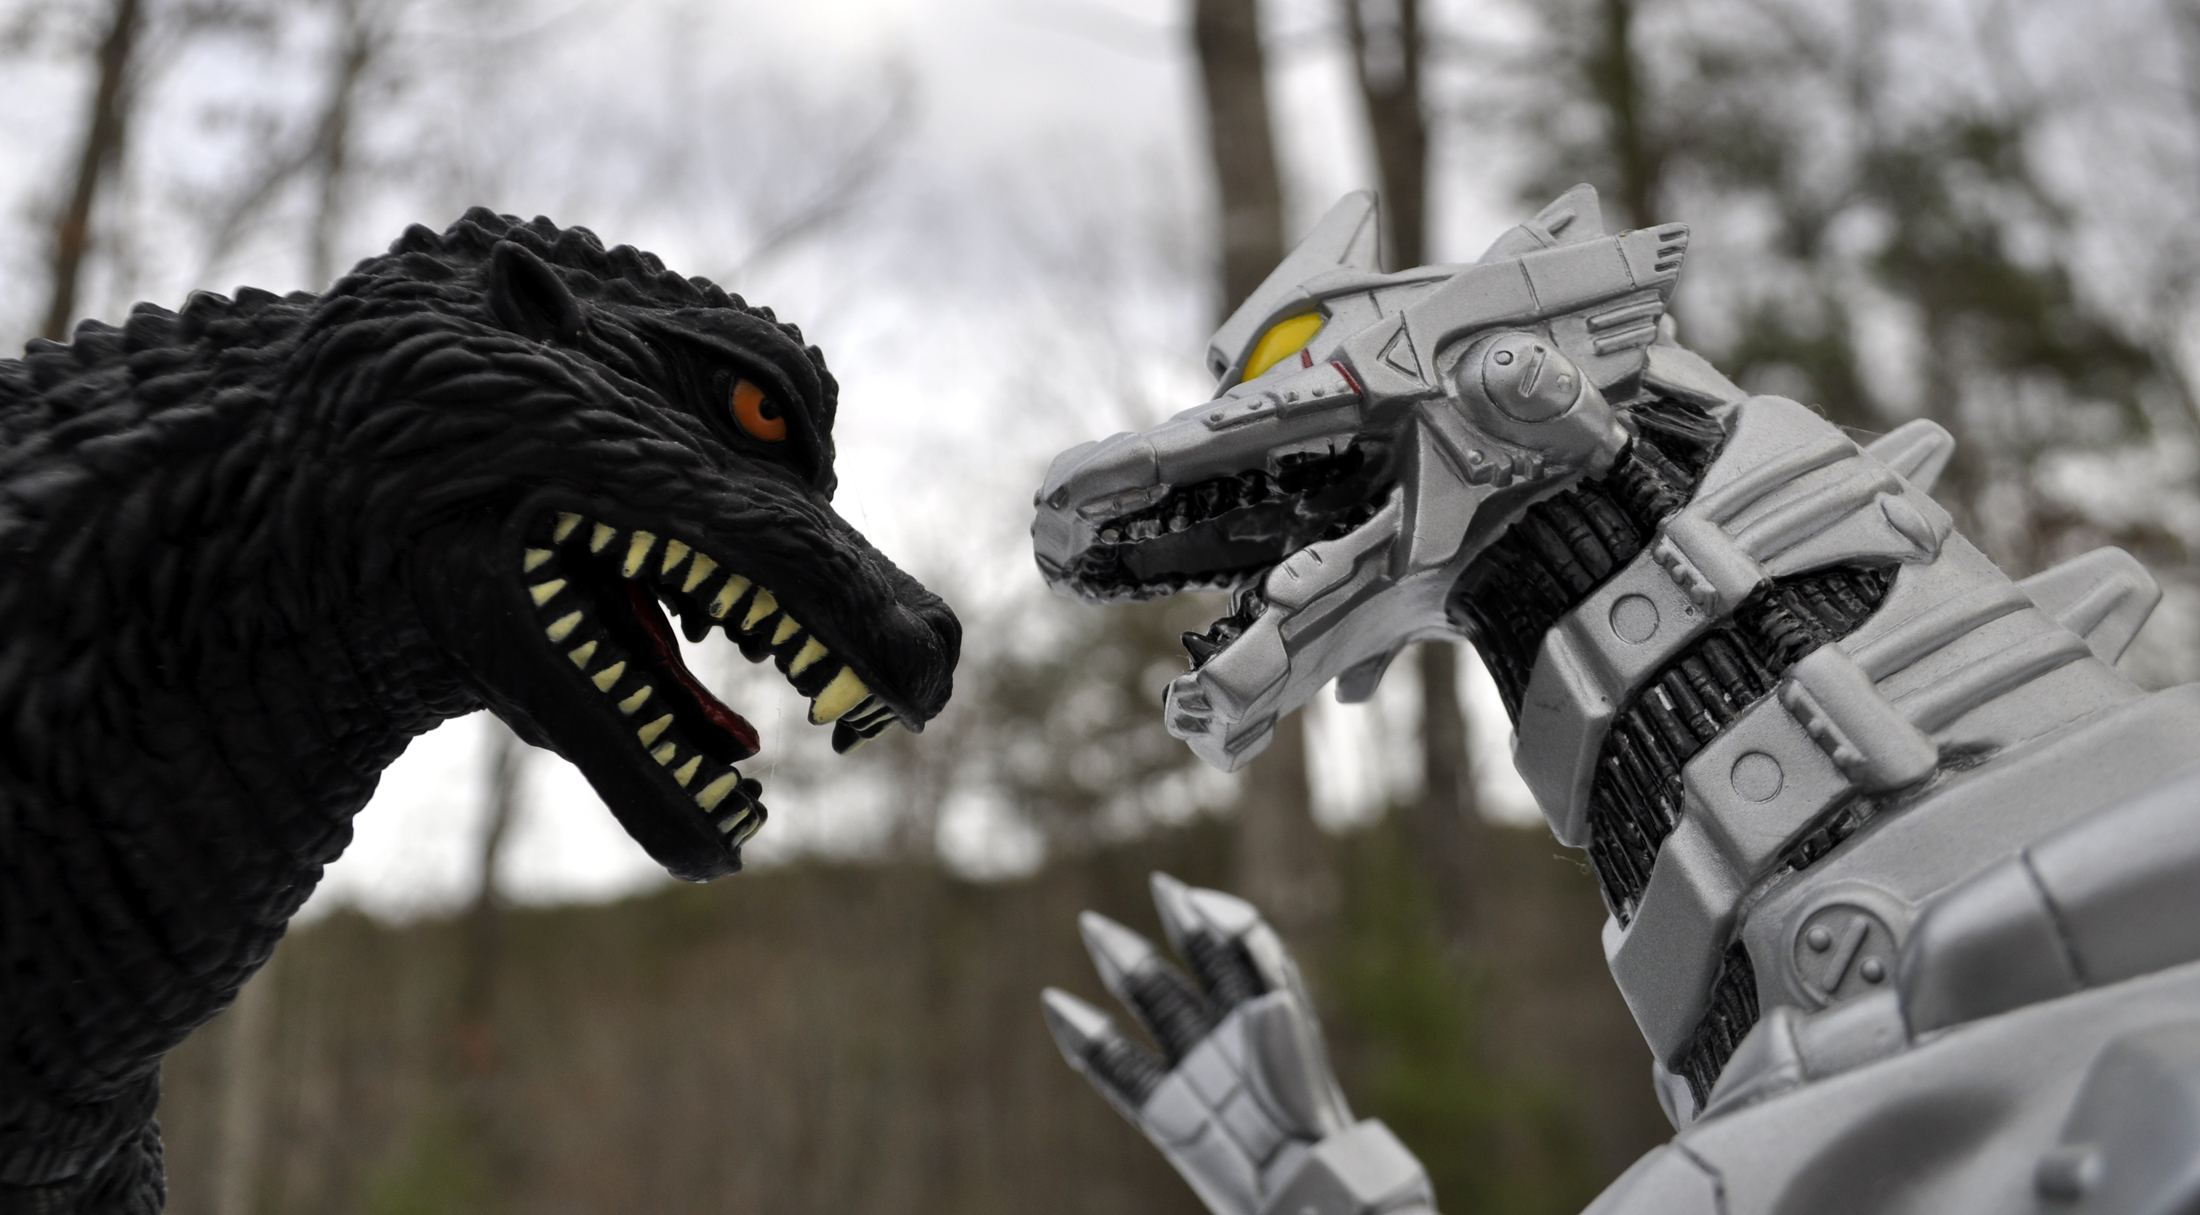 Home  gt  Toys  gt  Browse  Action Figures TransformersGodzilla Vs Mechagodzilla 2 Toys